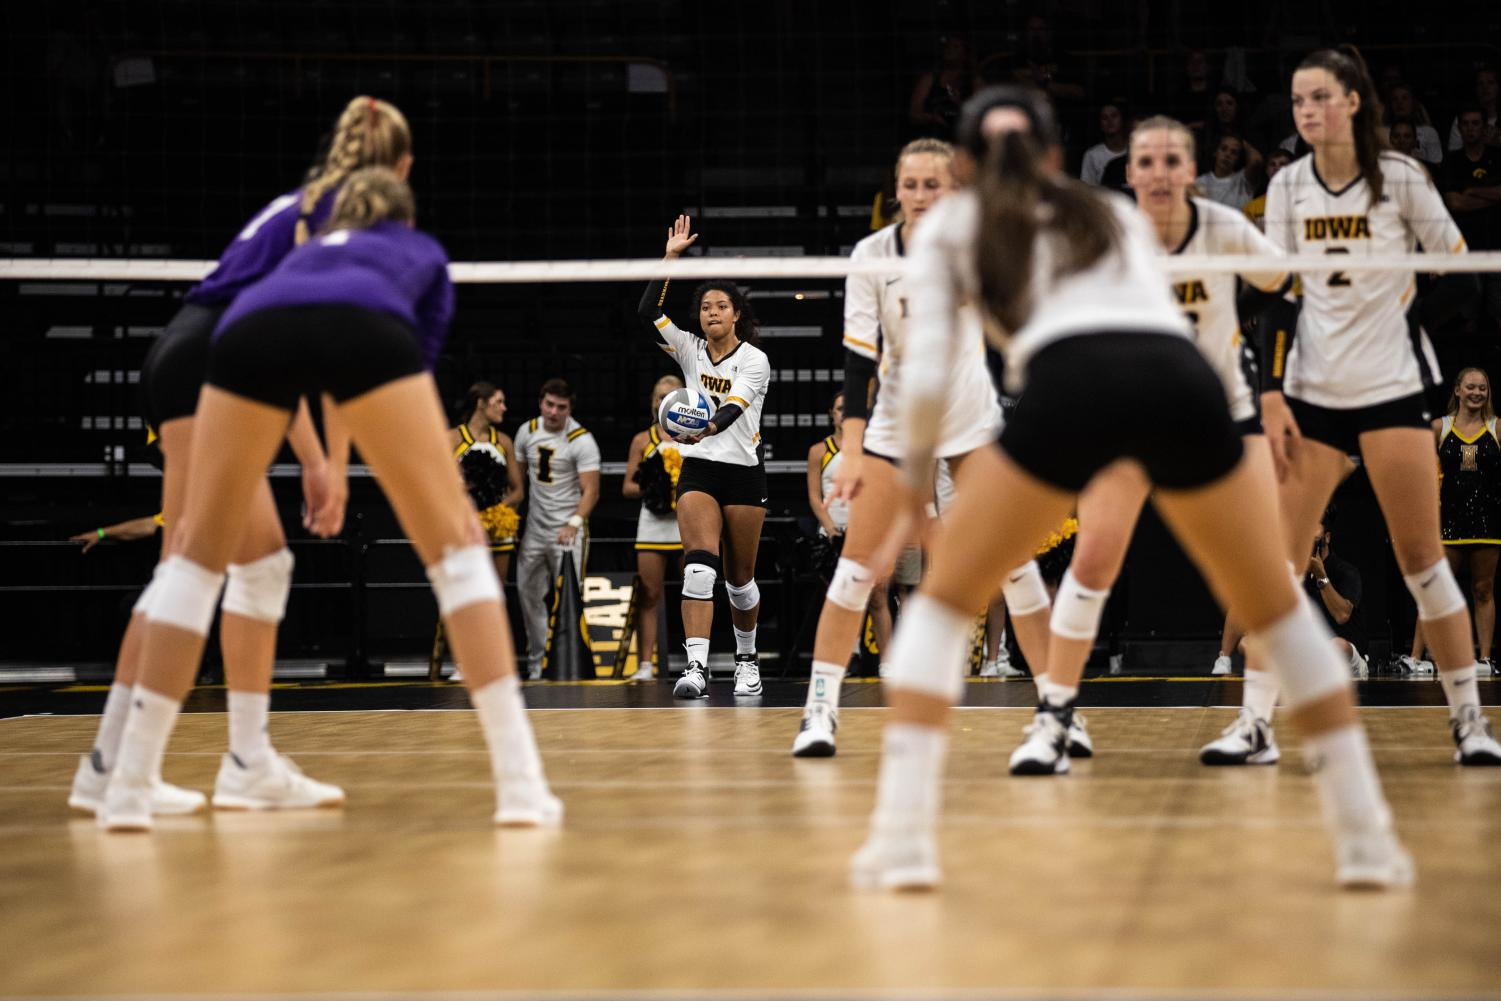 Iowa+setter+Brie+Orr+serves+the+ball+during+a+volleyball+match+between+Iowa+and+Washington+at+Carver+Hawkeye+Arena+on+Saturday%2C+September+7%2C+2019.+The+Hawkeyes+were+defeated+by+the+Huskies%2C+3-1.